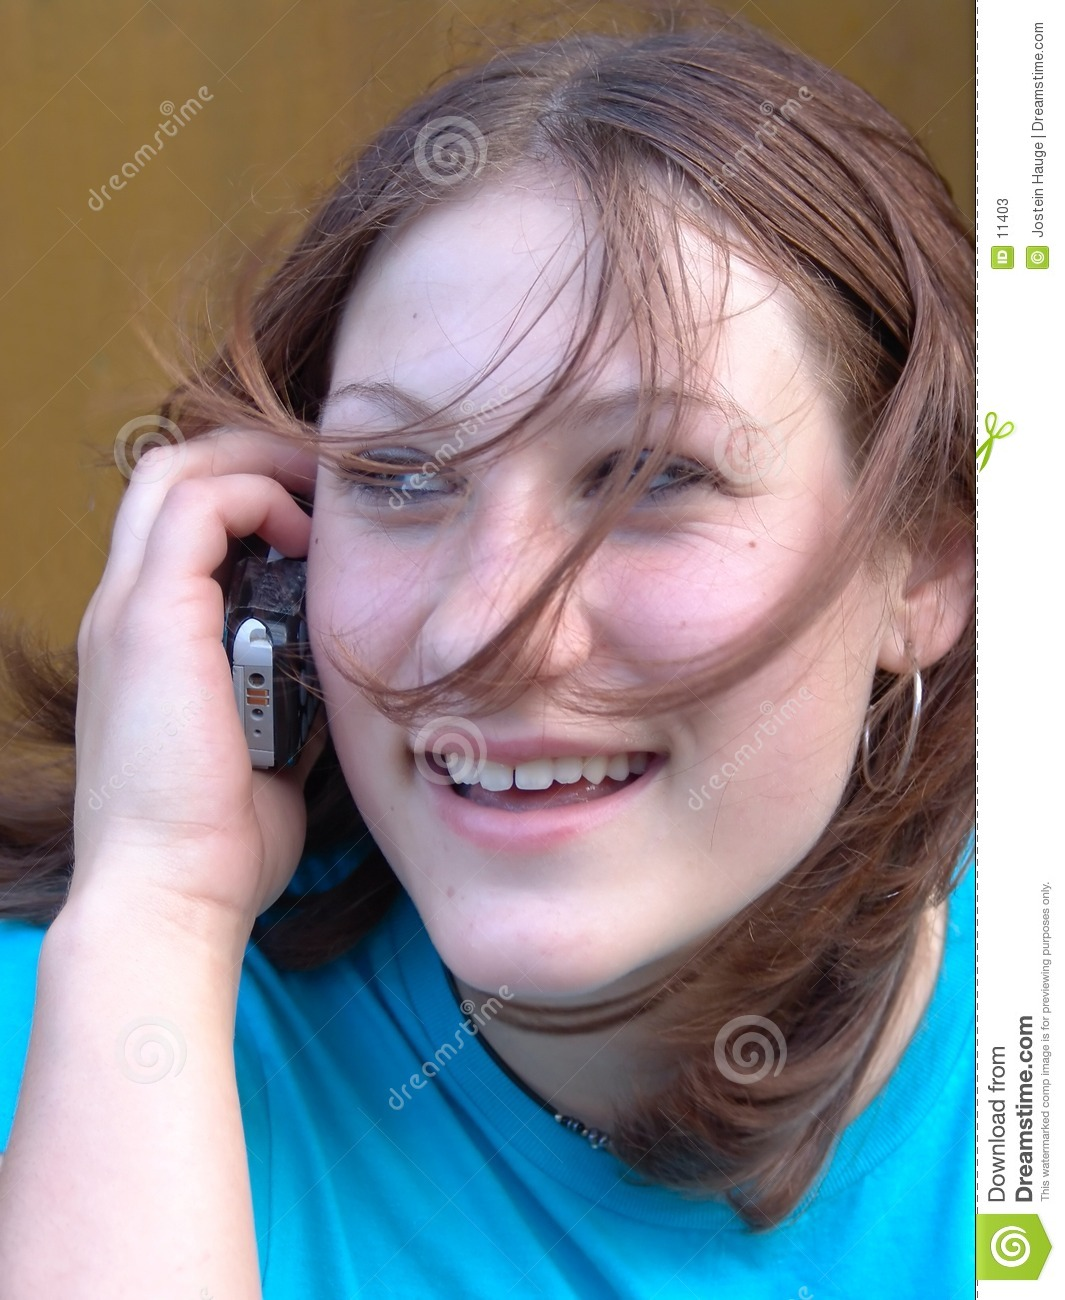 Teen Talking on Cell Phone